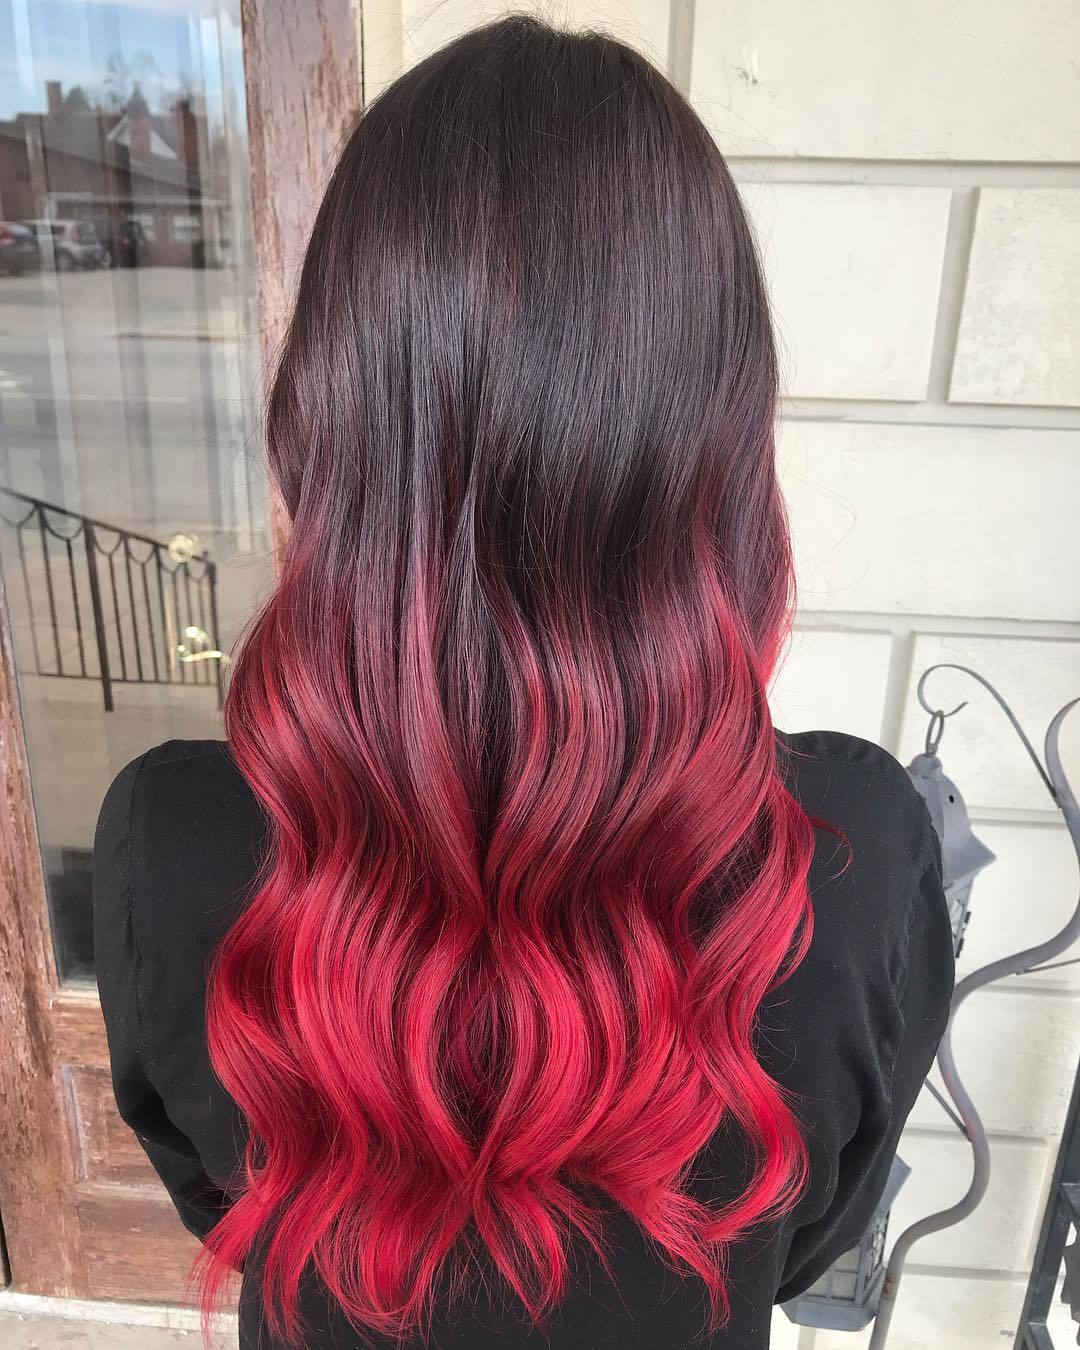 Woman with a black cherry hair colour done in an ombre technique on her long hair